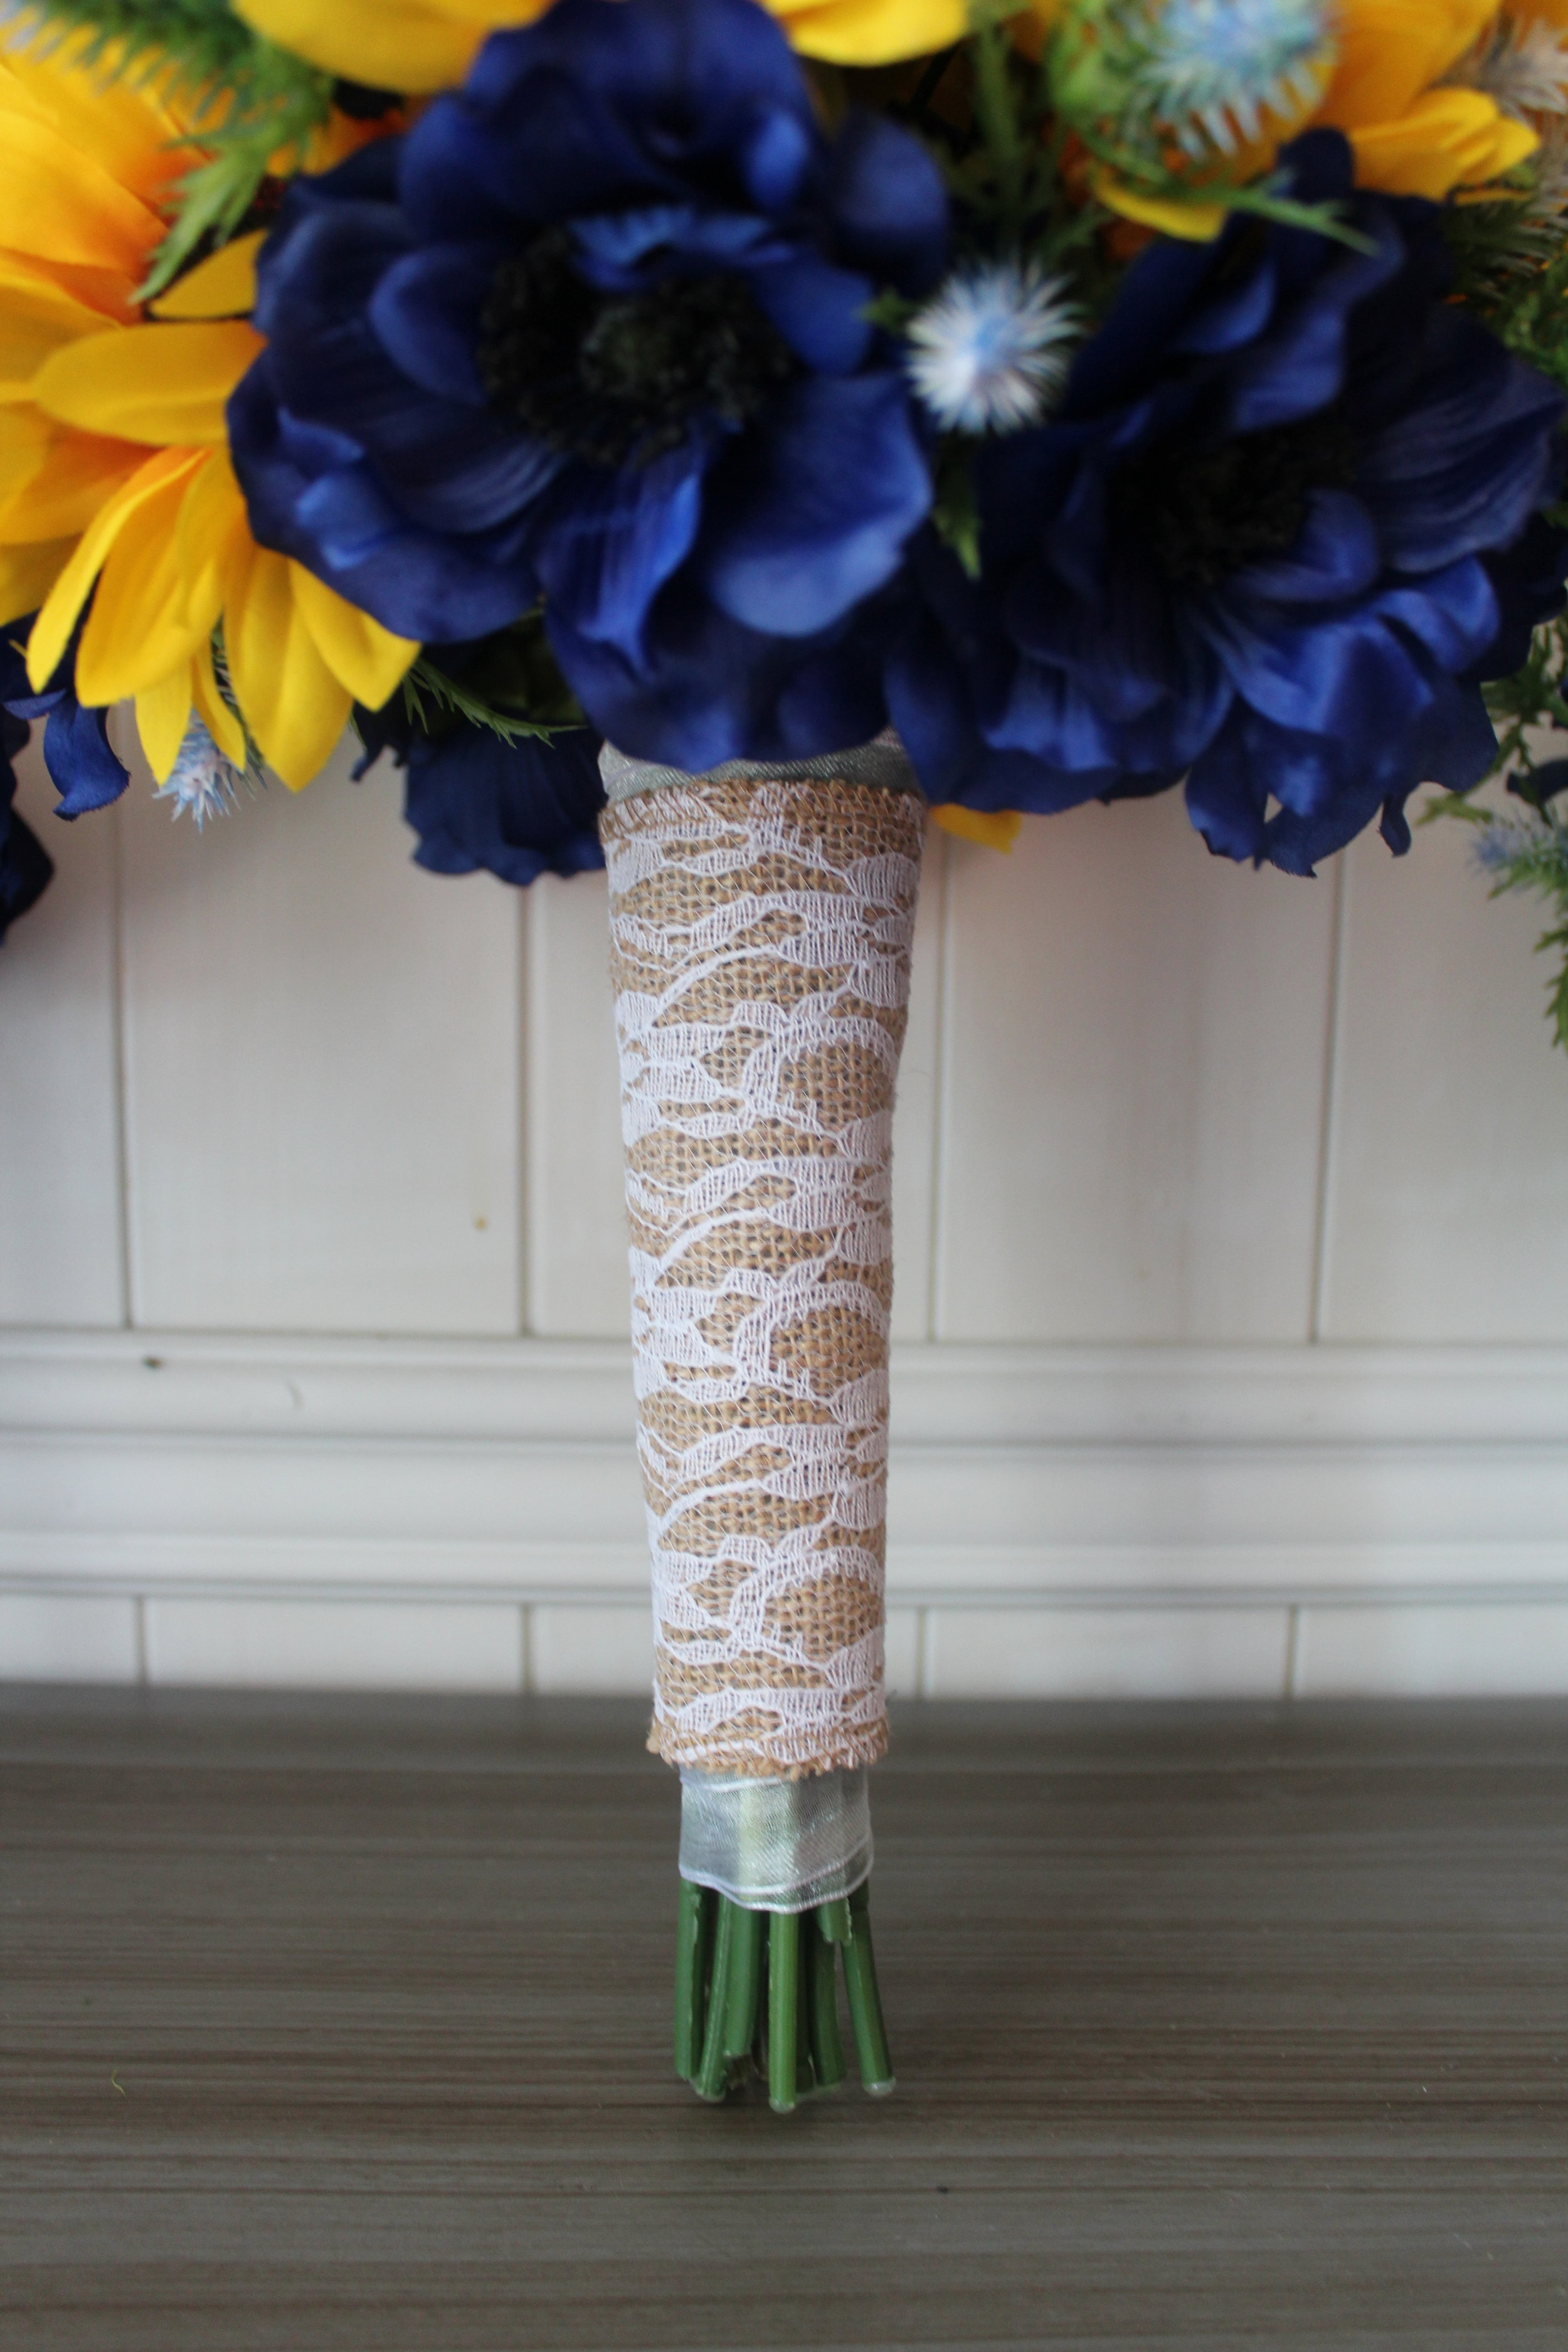 Bouquet detail with burlap and lace.